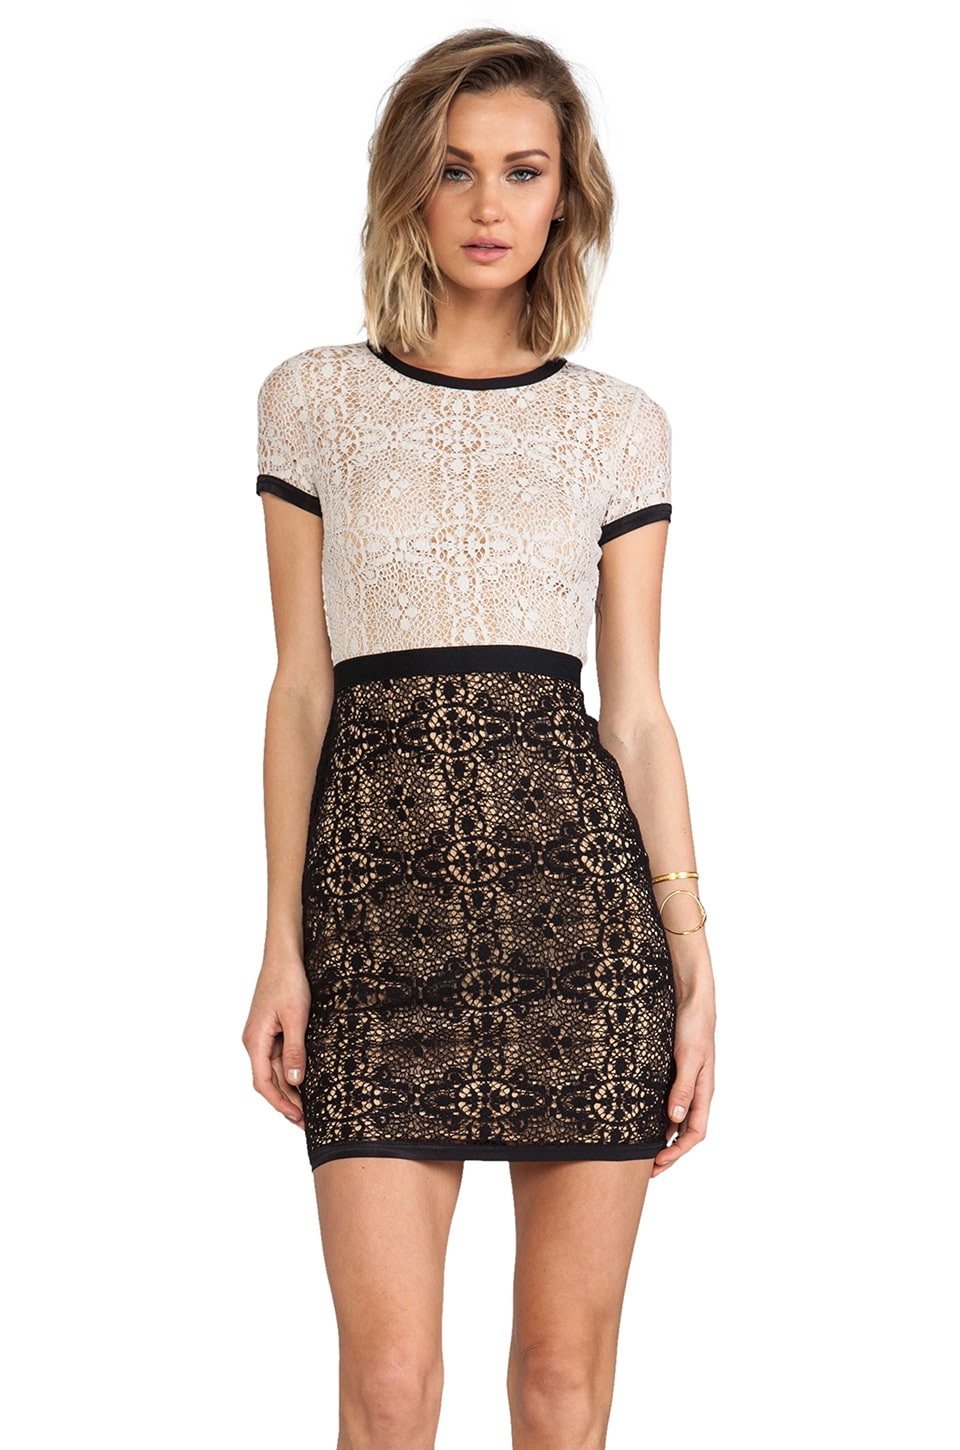 Bailey 44 Yvette Dress in Beige & Black